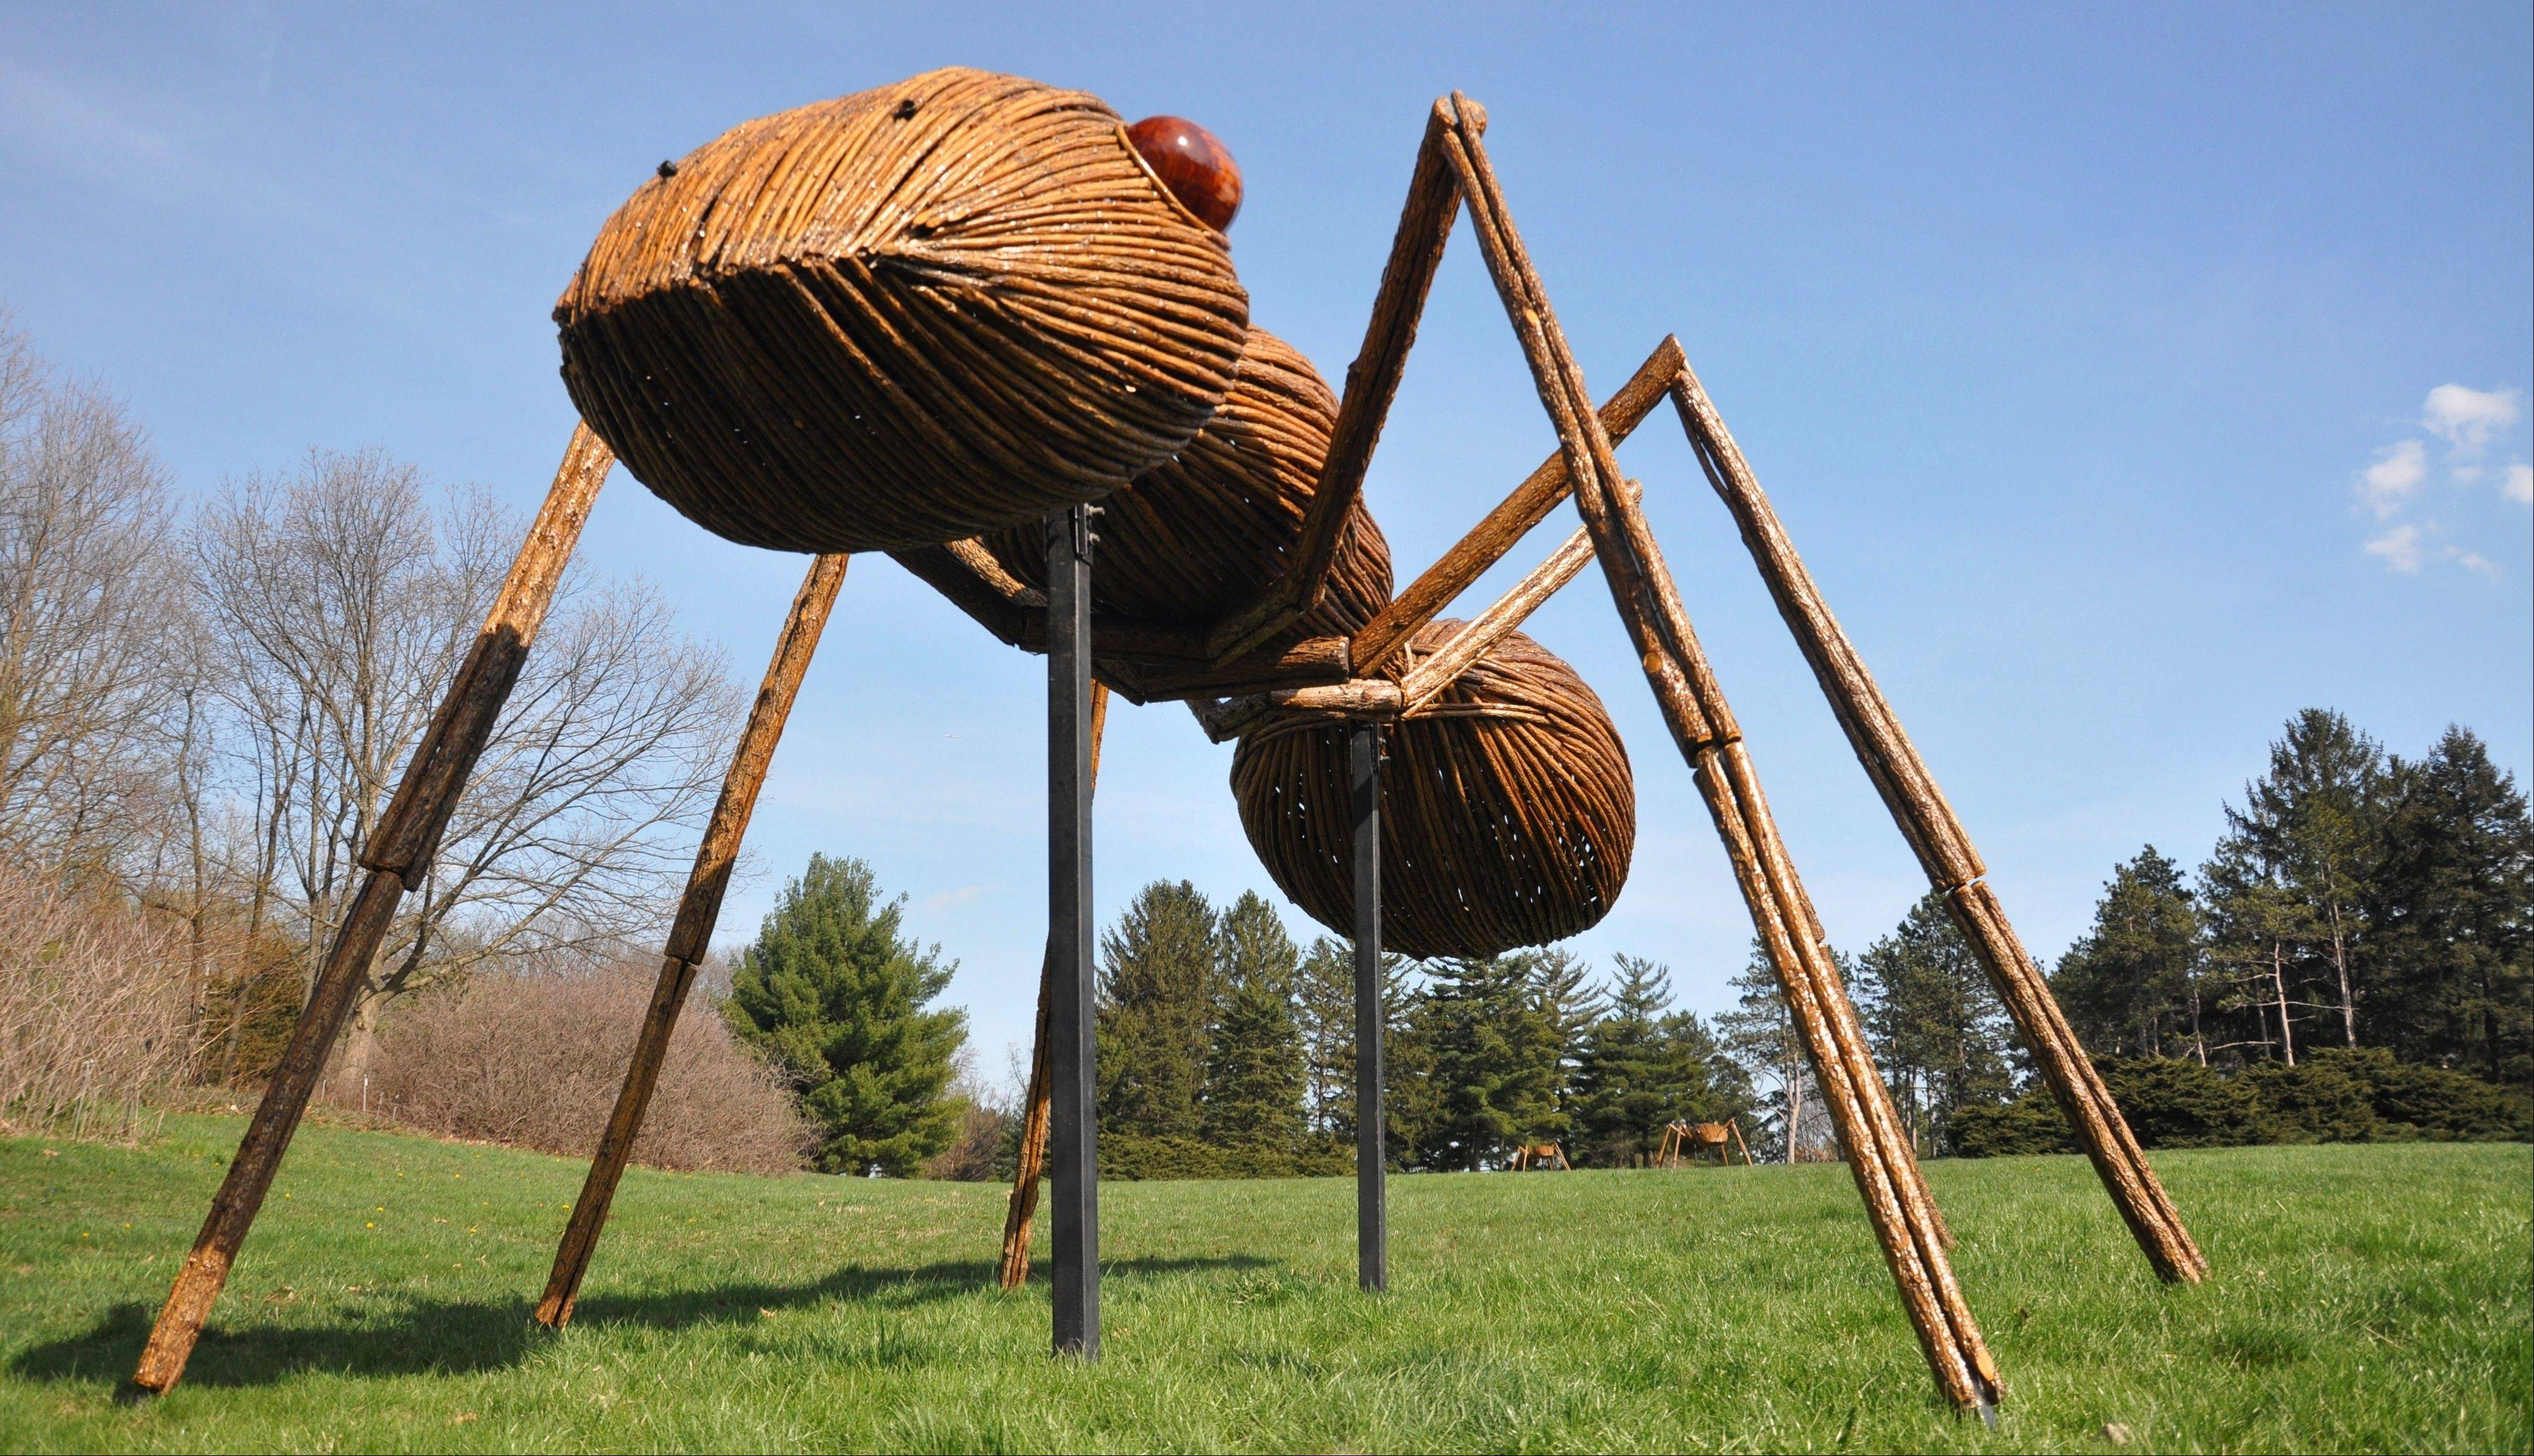 The Morton Arboretum in Lisle is going buggy this summer with larger-than-life insects on display through September.